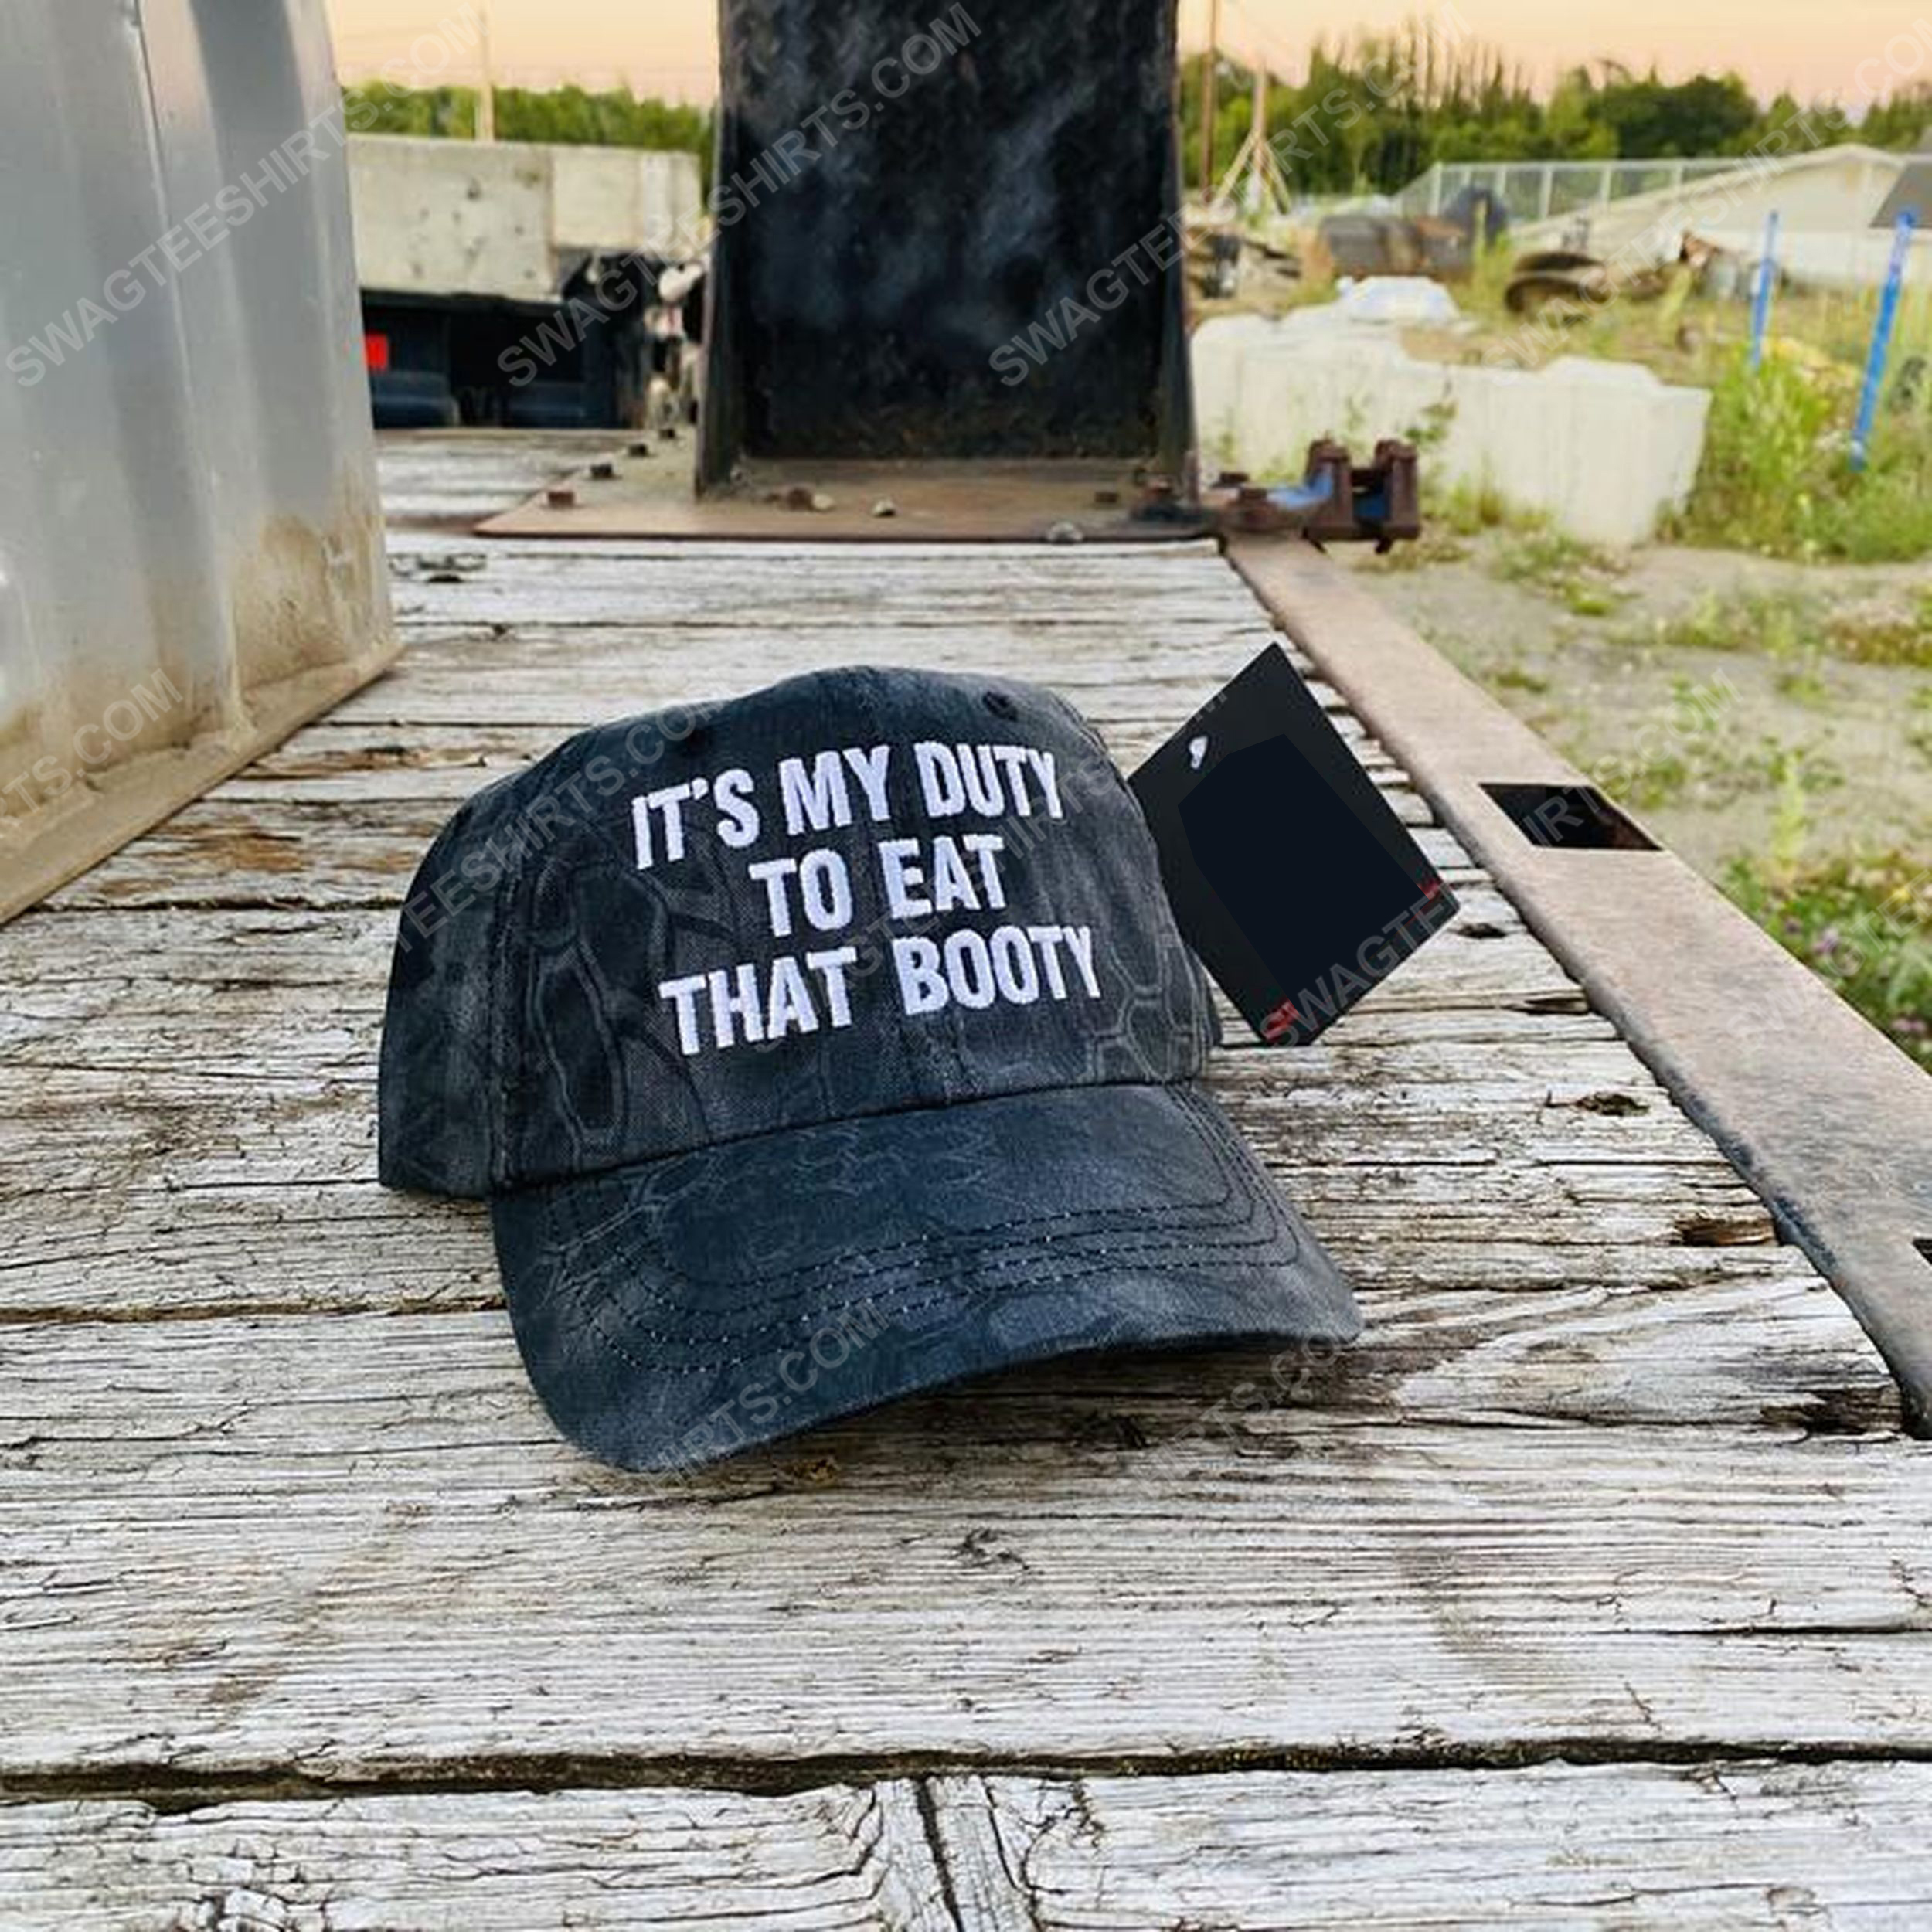 It's my duty to eat that booty full print classic hat 1